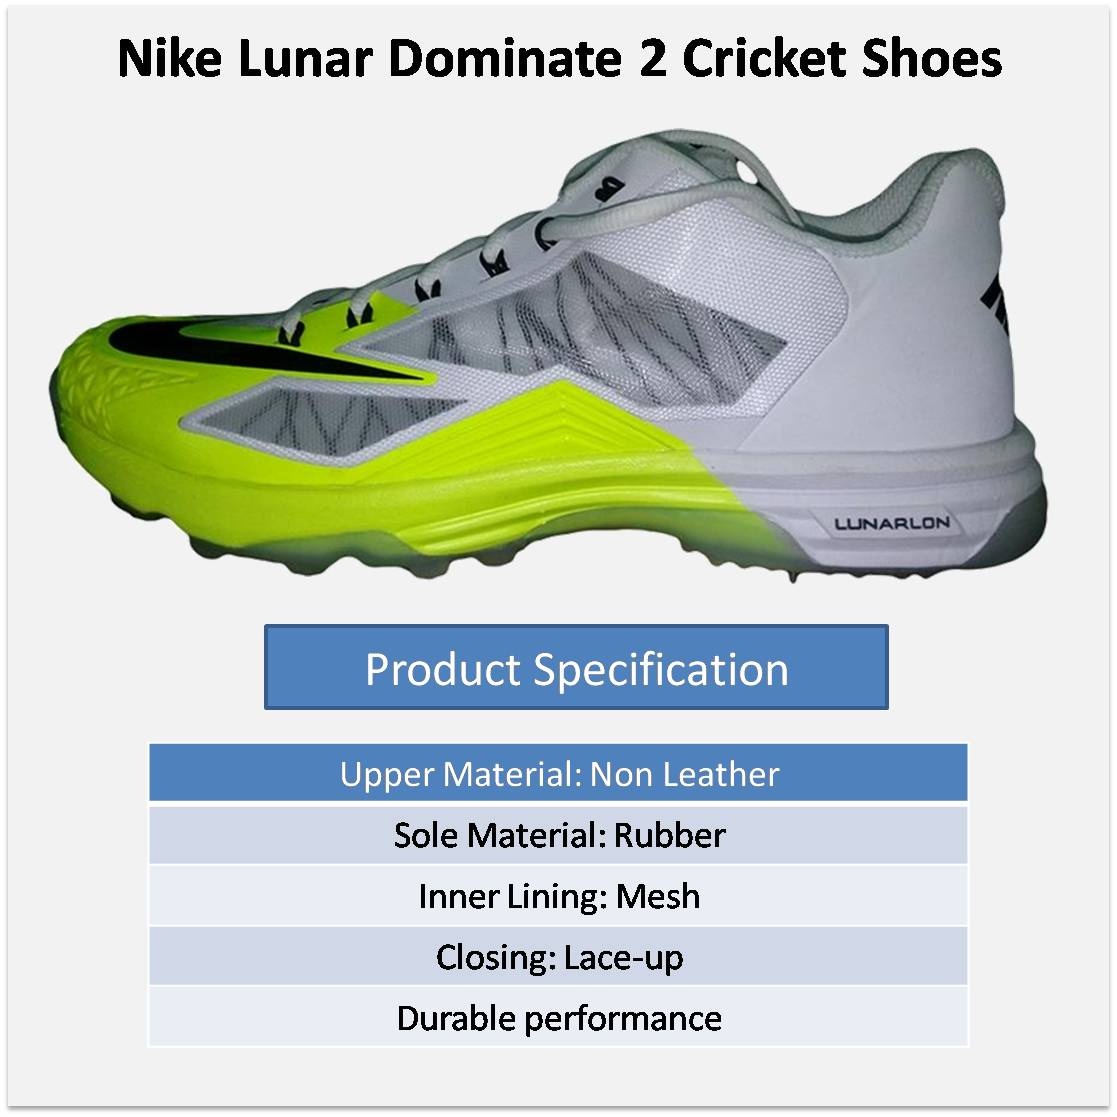 80ad6a9dde8f ... nike lunar dominate 2 cricket shoes alt1 .